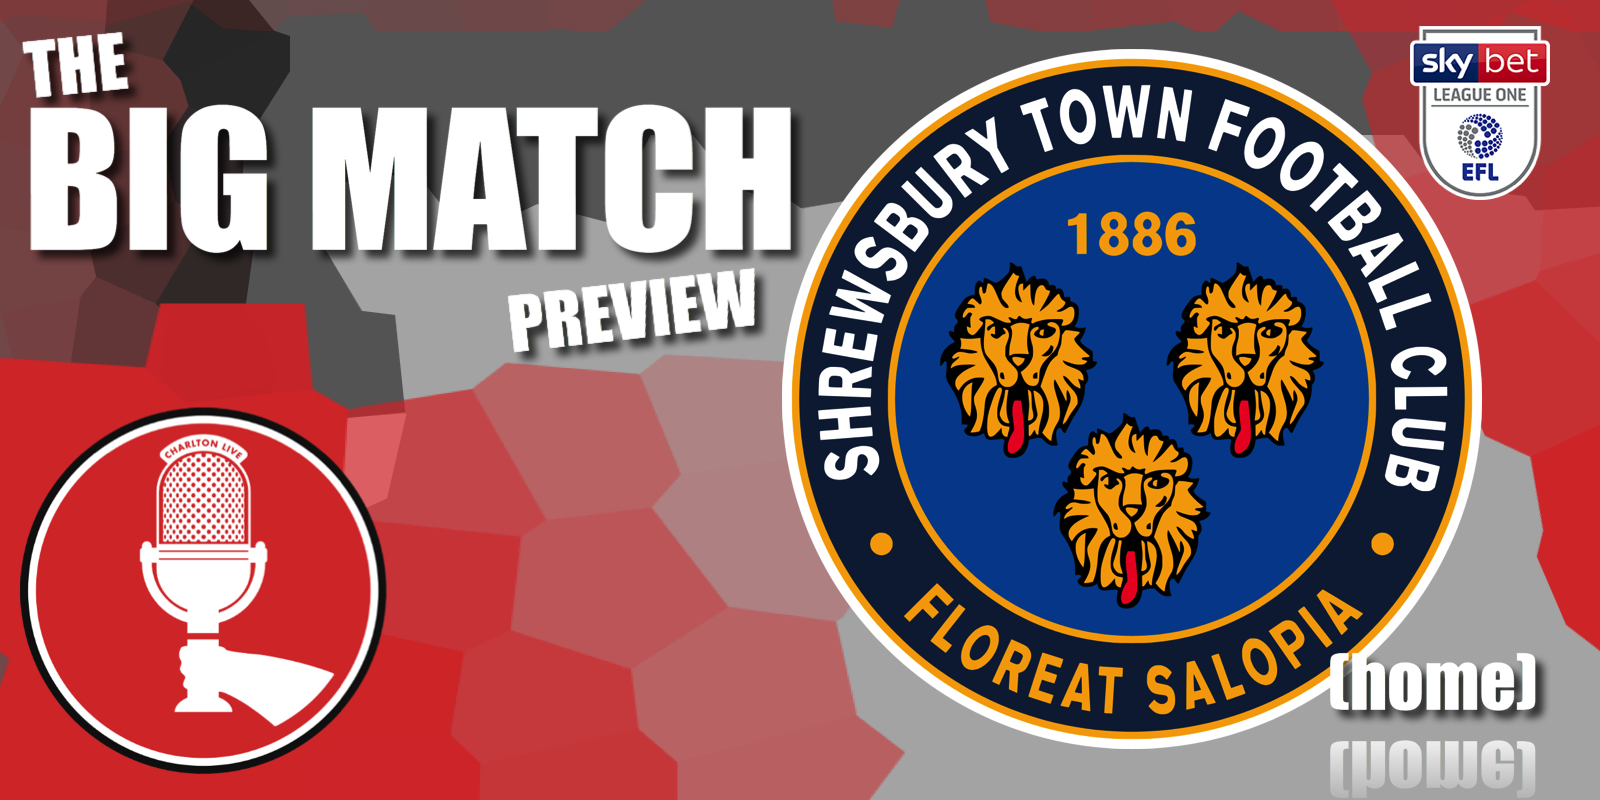 Big Match Preview – Shrewsbury Town at home 2020-21